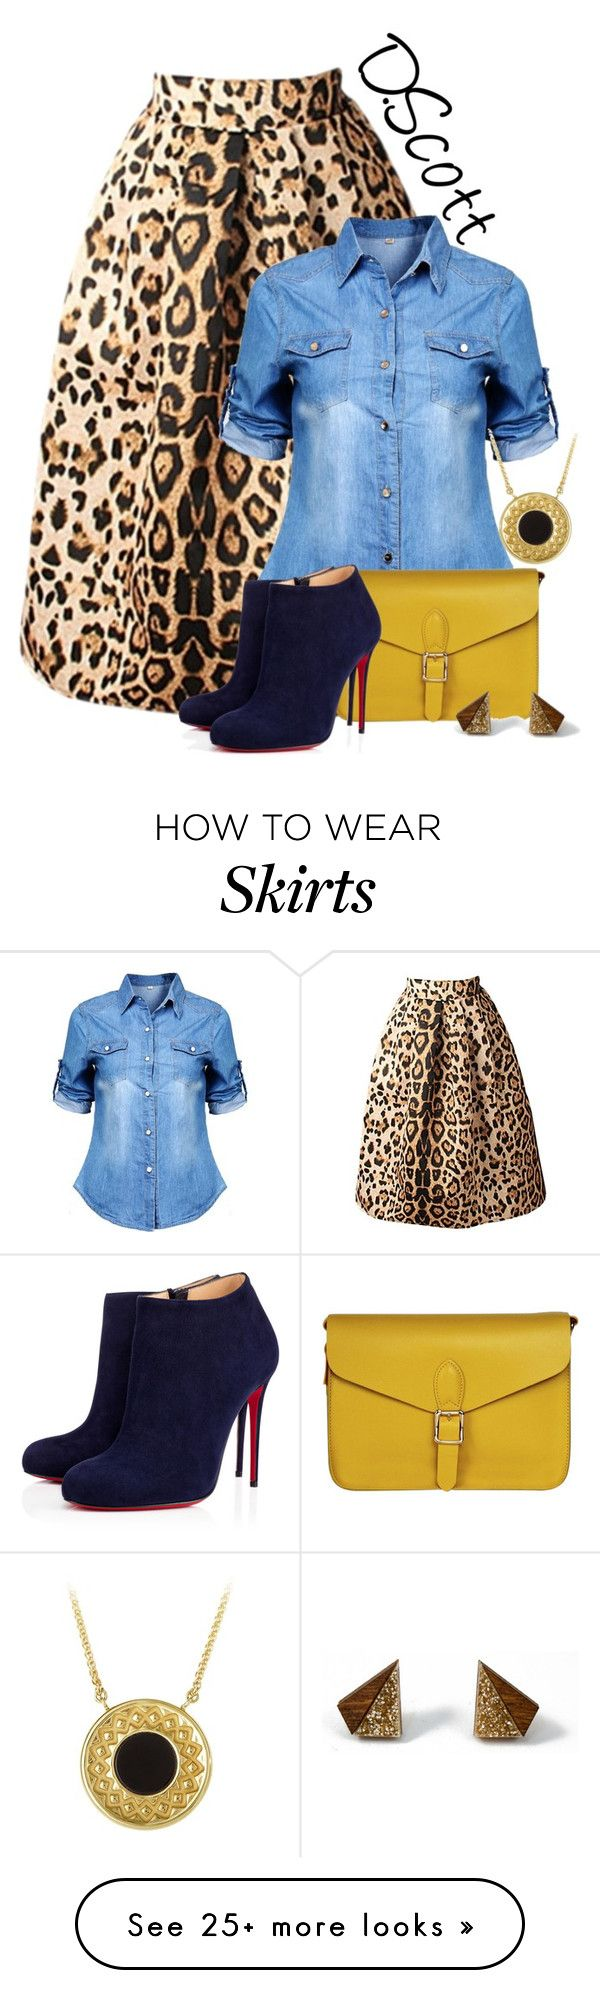 """""""Style Me: Skirt"""" by dawn-scott on Polyvore featuring Angela & Roi, Christian Louboutin, Wolf & Moon and Carrera y Carrera"""